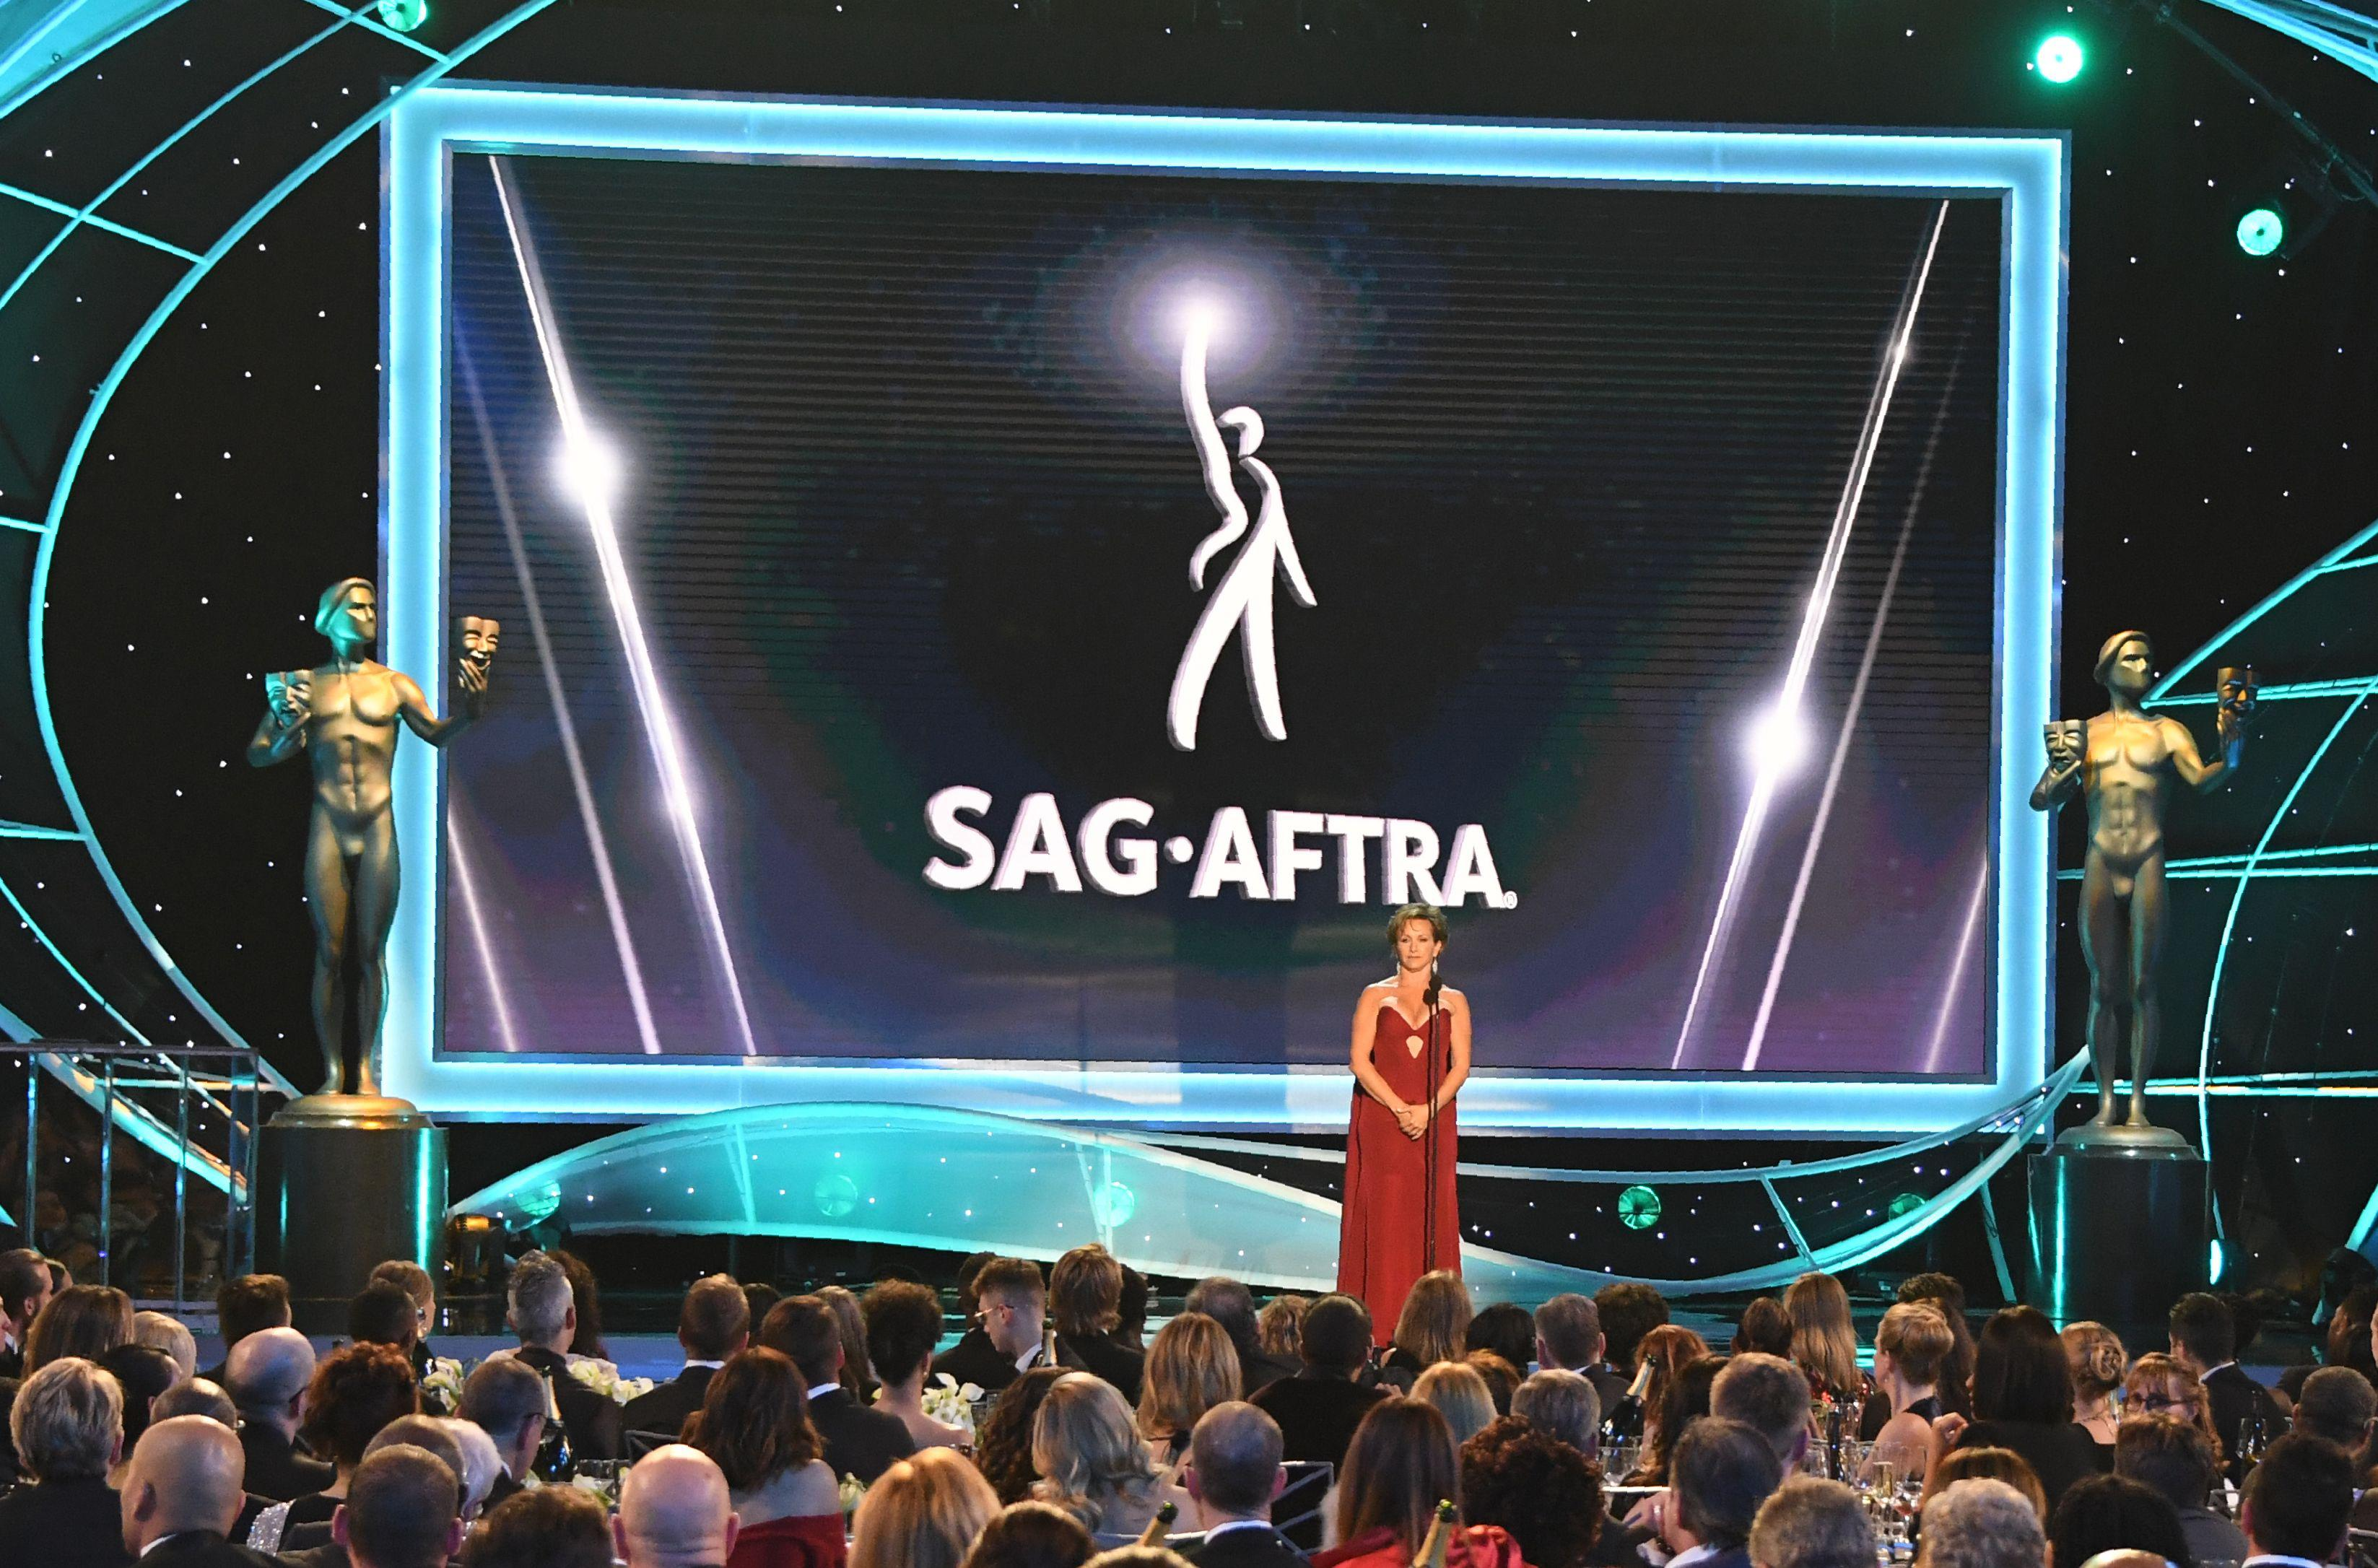 SAG-AFTRA President Gabrielle Carteris speaks onstage during the 24th Annual Screen Actors Guild Awards show at The Shrine Auditorium on January 21, 2018 in Los Angeles, California. / AFP PHOTO / Mark RALSTON        (Photo credit should read MARK RALSTON/AFP/Getty Images)